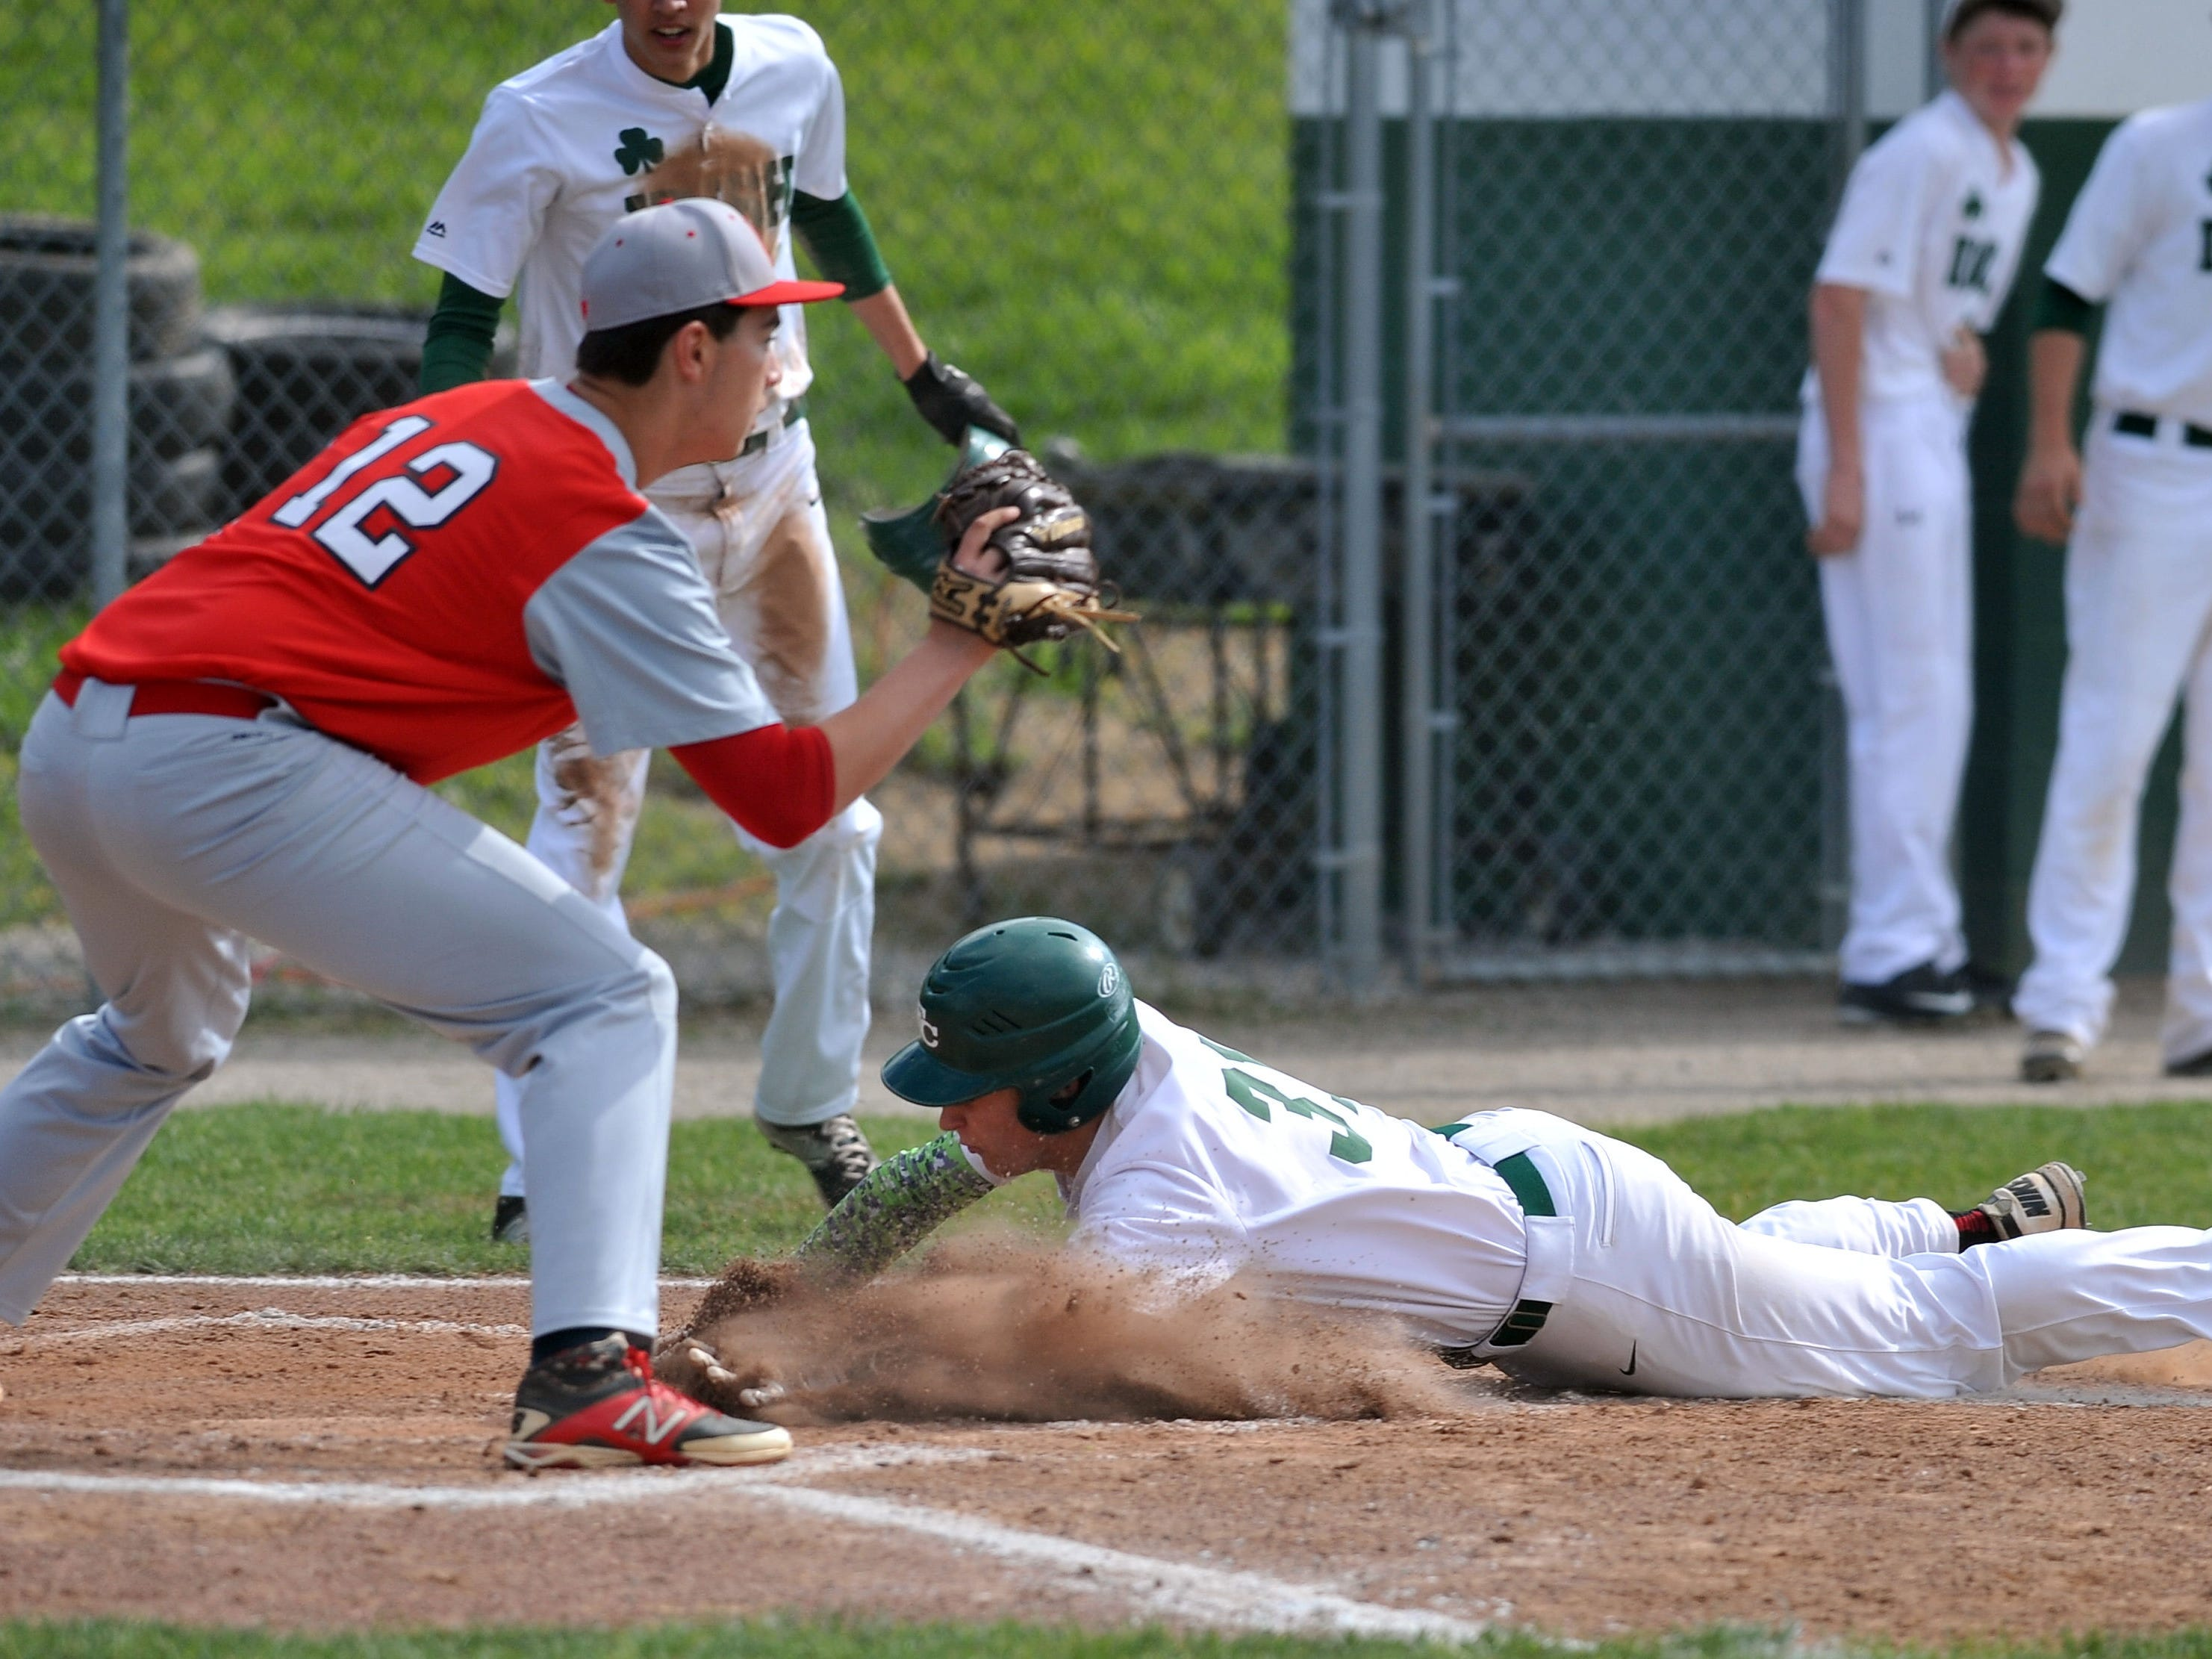 Fisher Catholic's Blake Saffell slides safely into home Wednesday night in Lancaster. The Irish defeated Fairbanks 5-2.